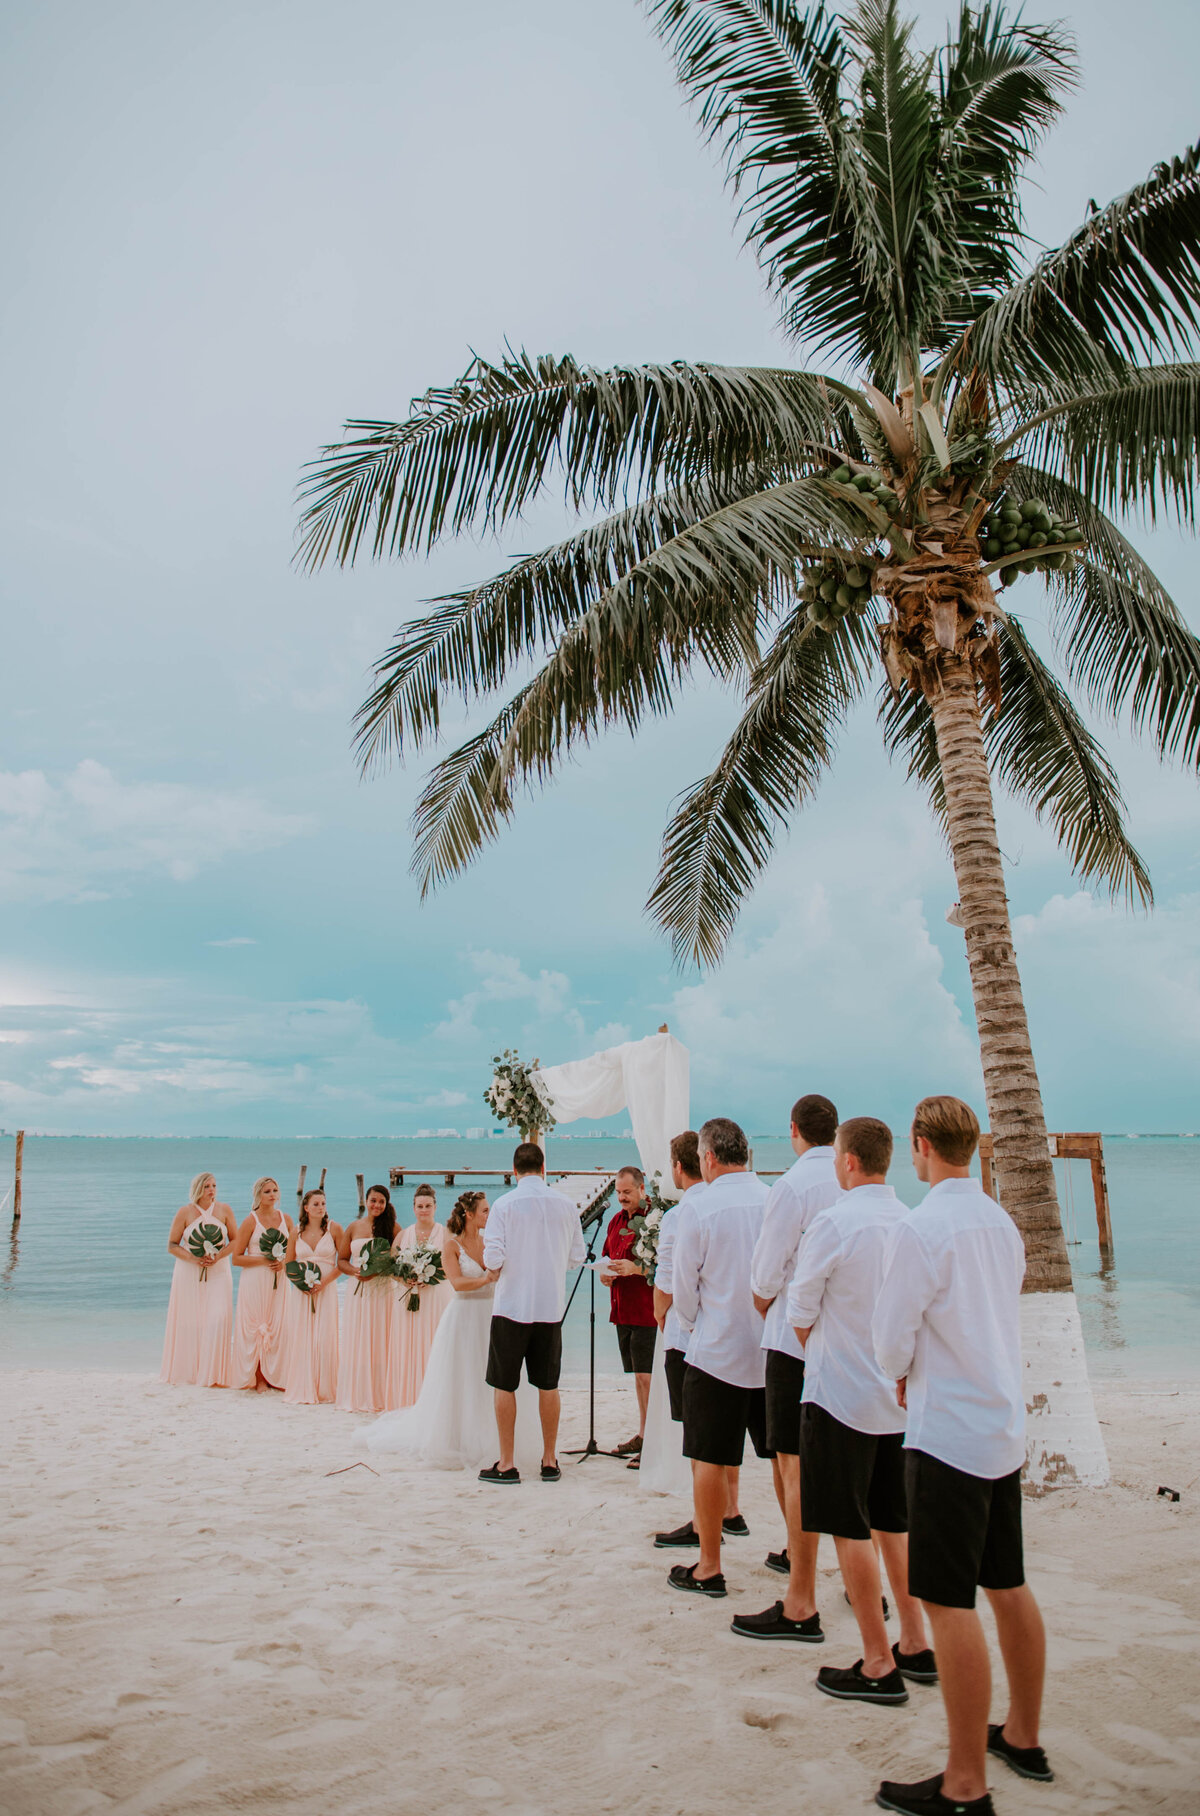 isla-mujeres-wedding-photographer-guthrie-zama-mexico-tulum-cancun-beach-destination-1085